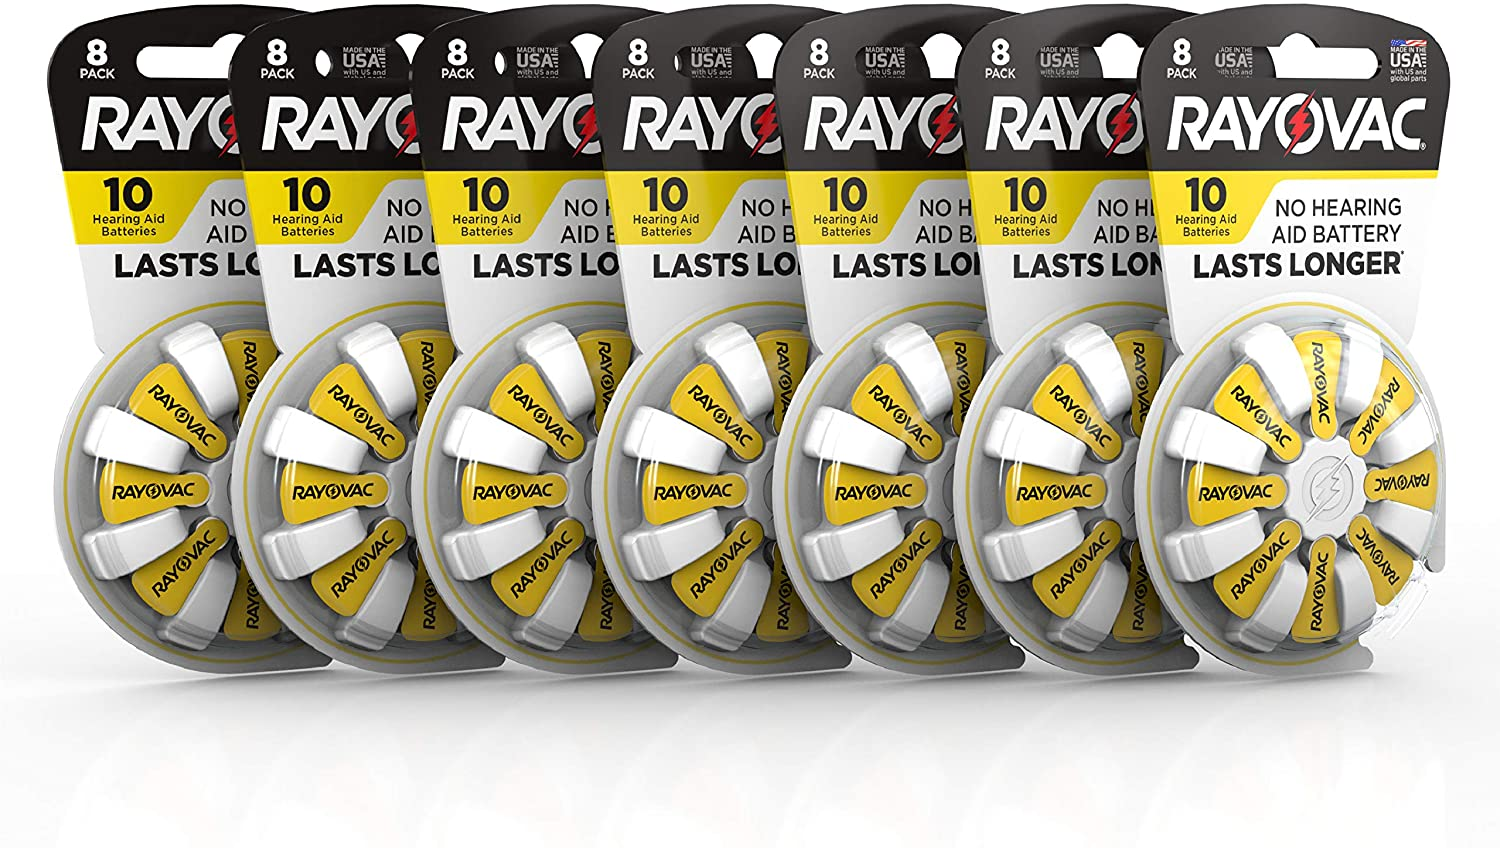 Rayovac Hearing Aid Batteries Size 10 for Advanced Hearing Aid Devices